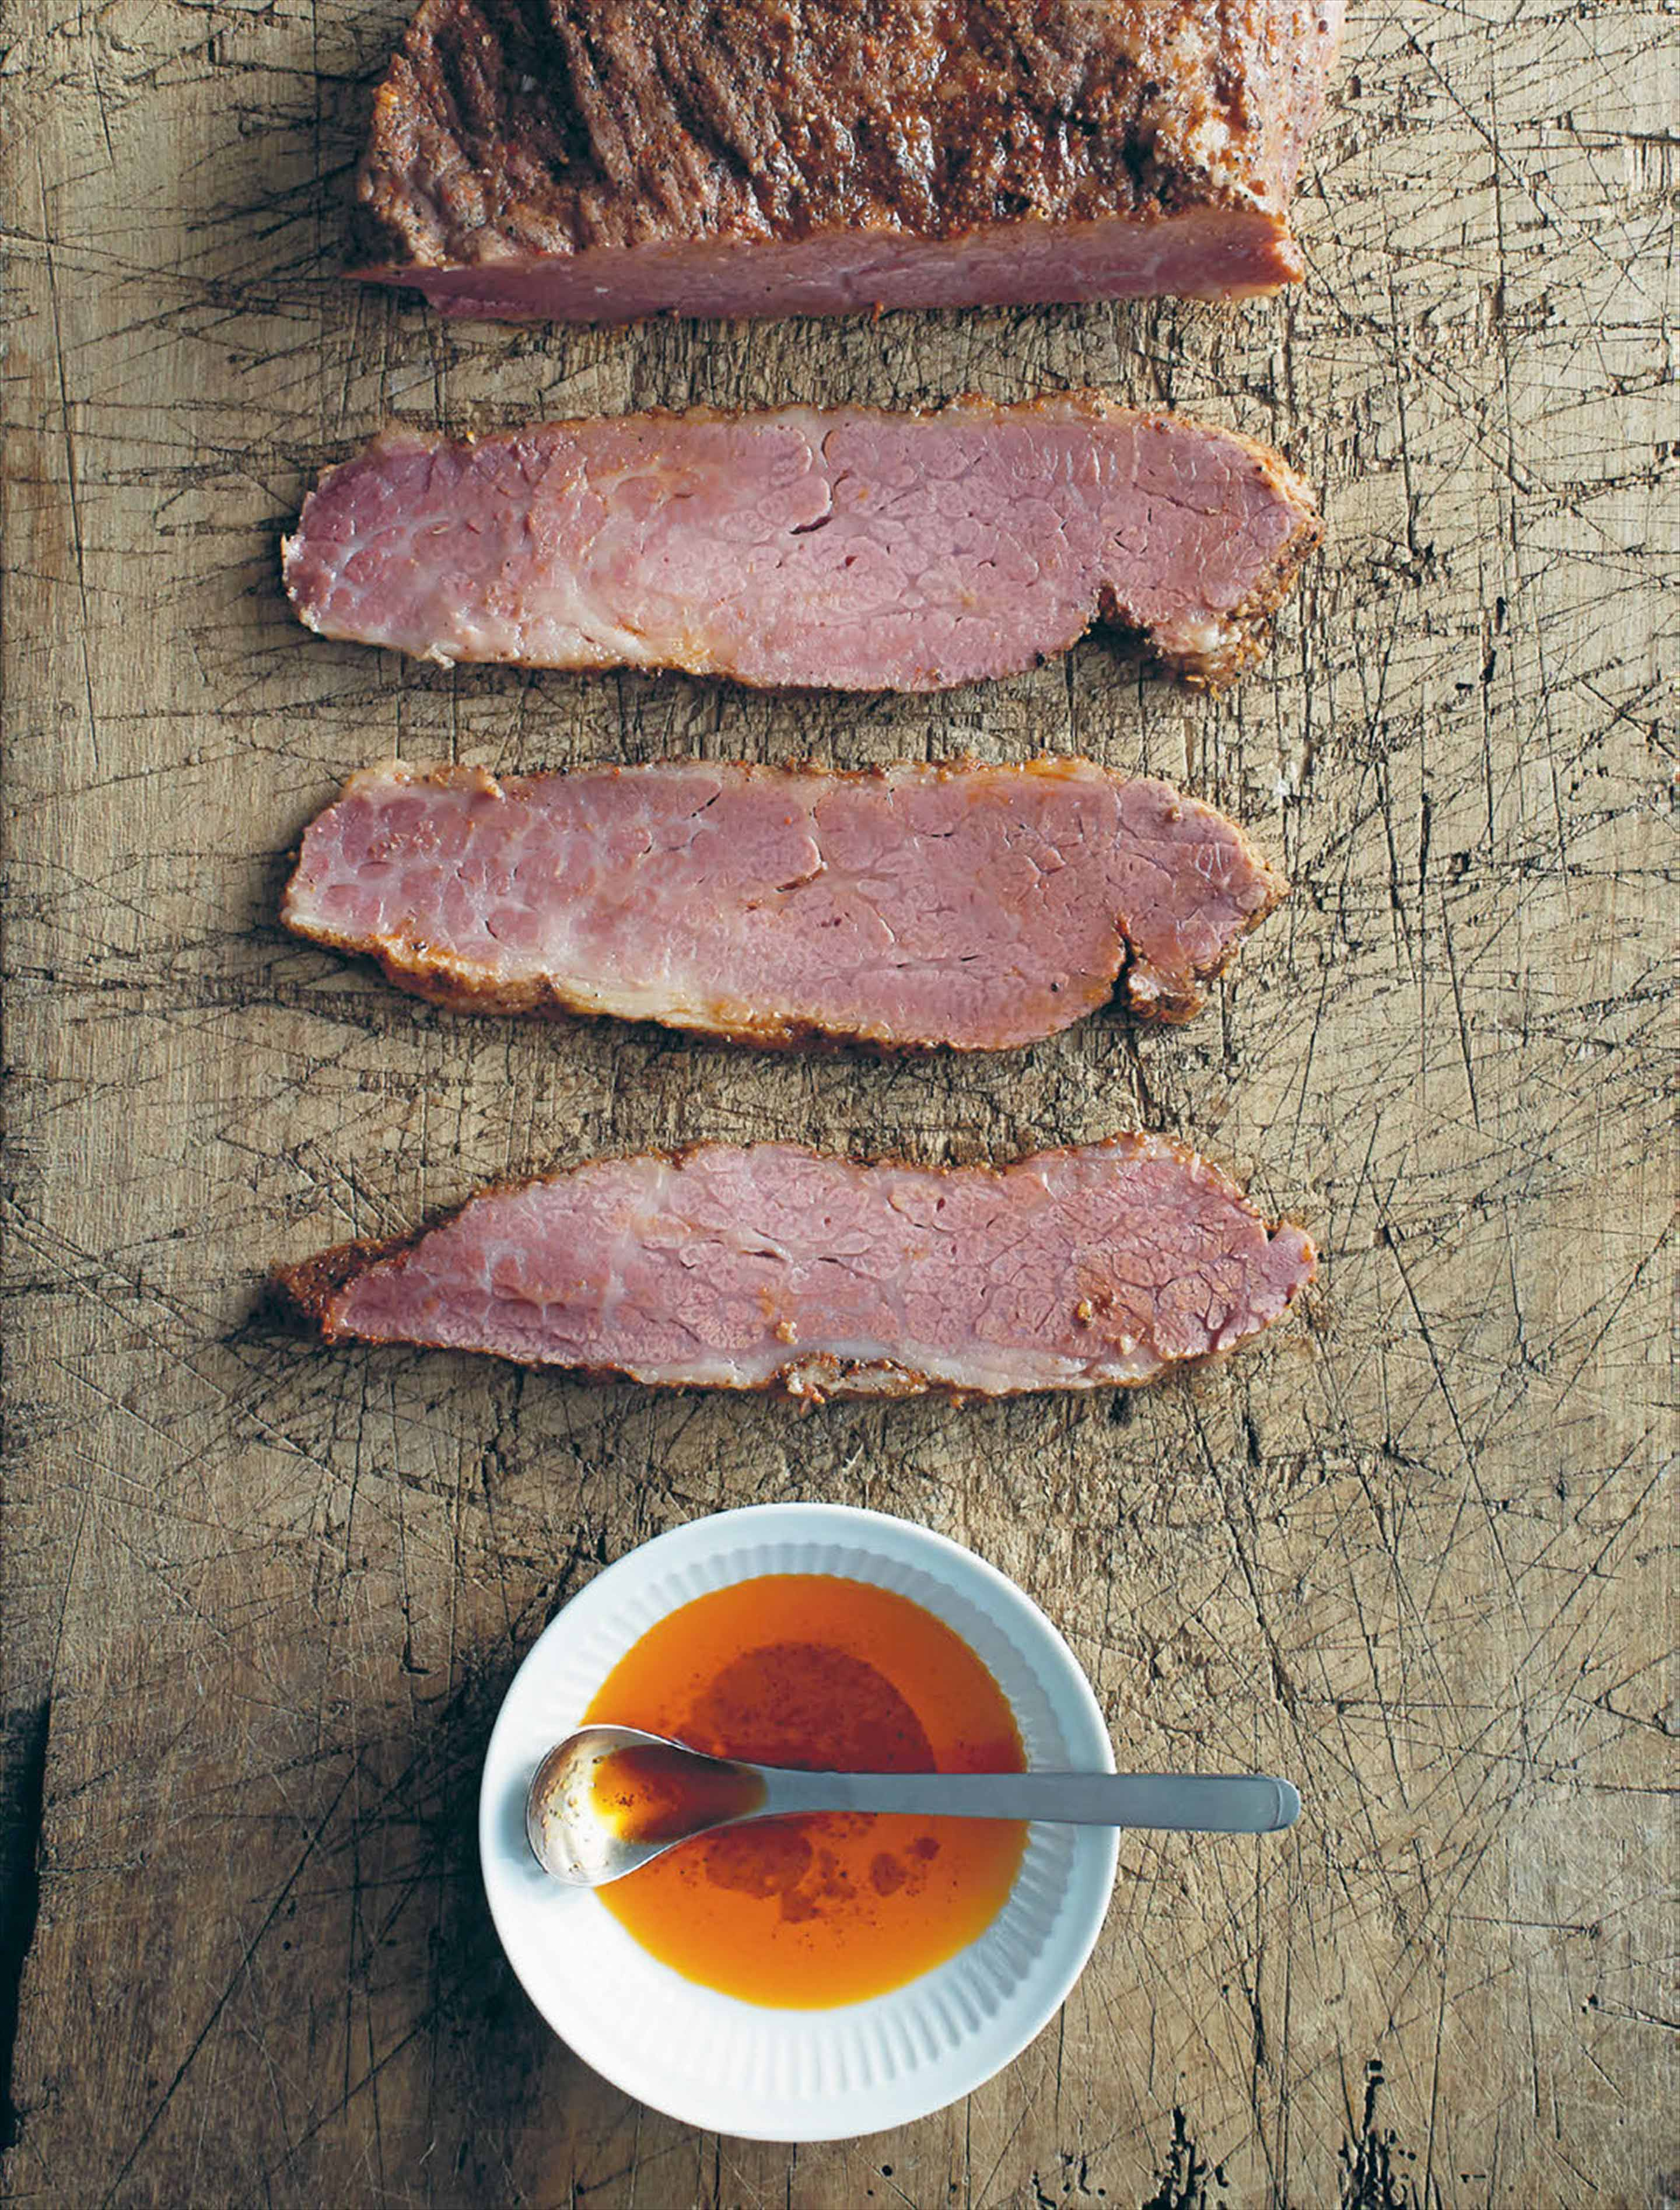 Spicy pastrami with chilli oil dressing